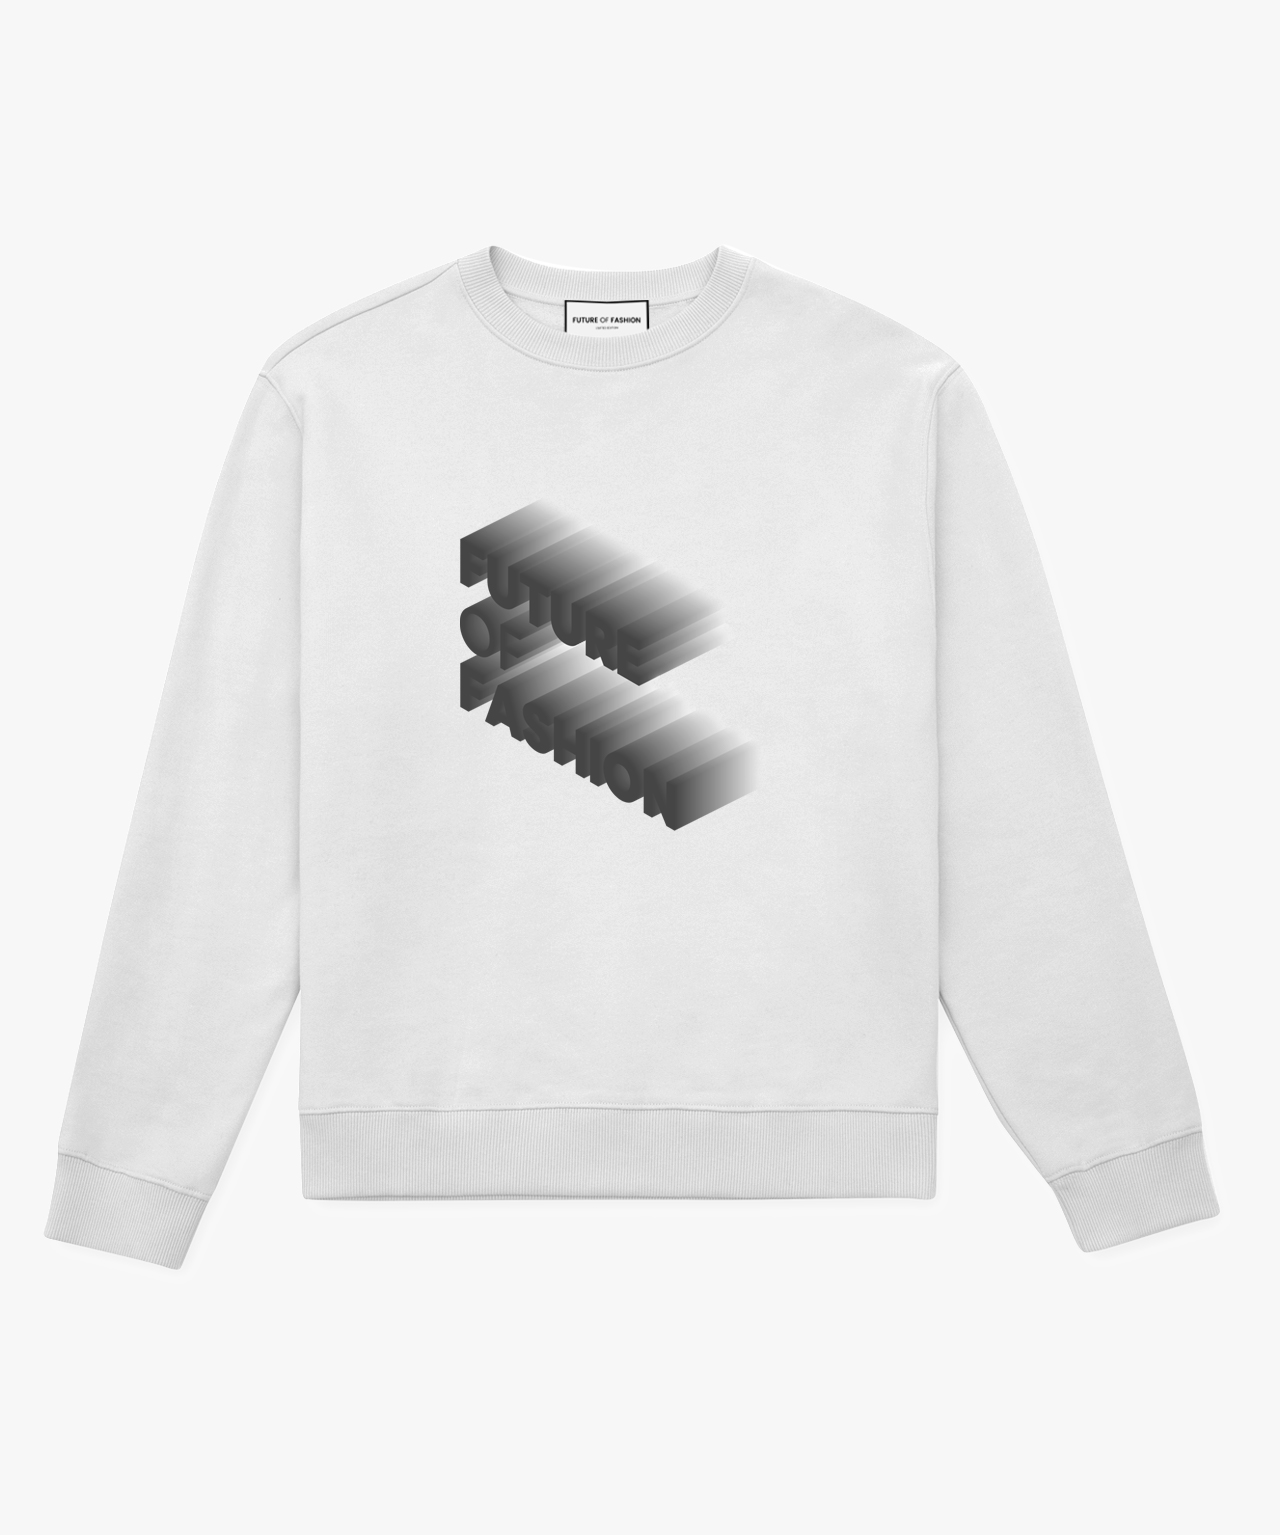 Fade Out Sweatshirt 17